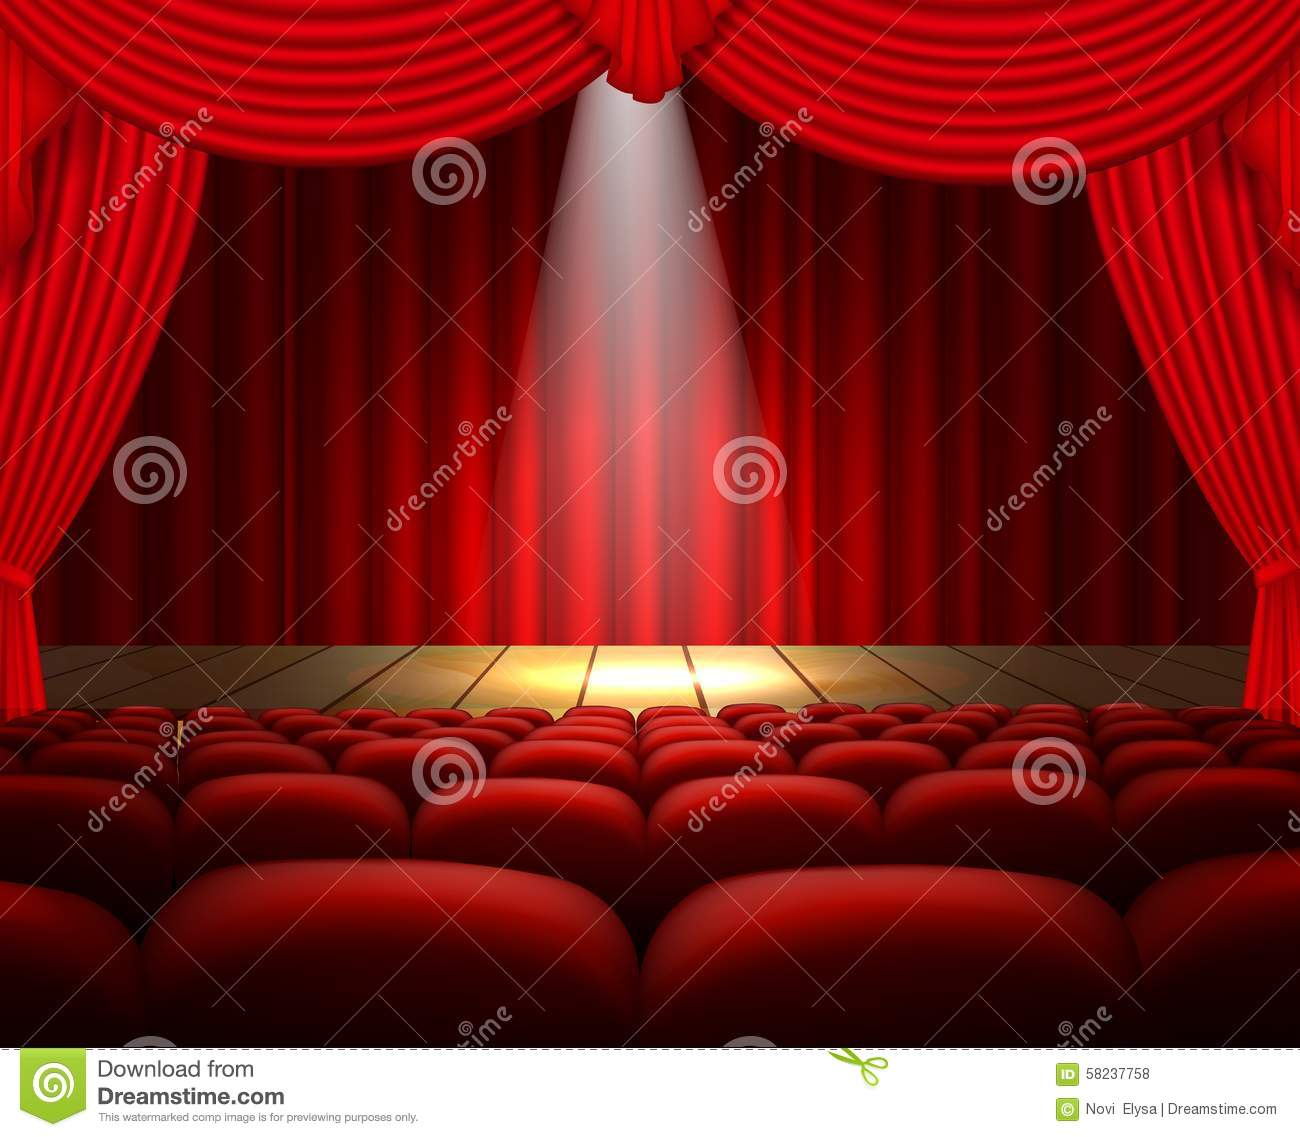 Stage curtains spotlight - A Theater Stage With A Red Curtain Seats And A Spotlight Stock Vector